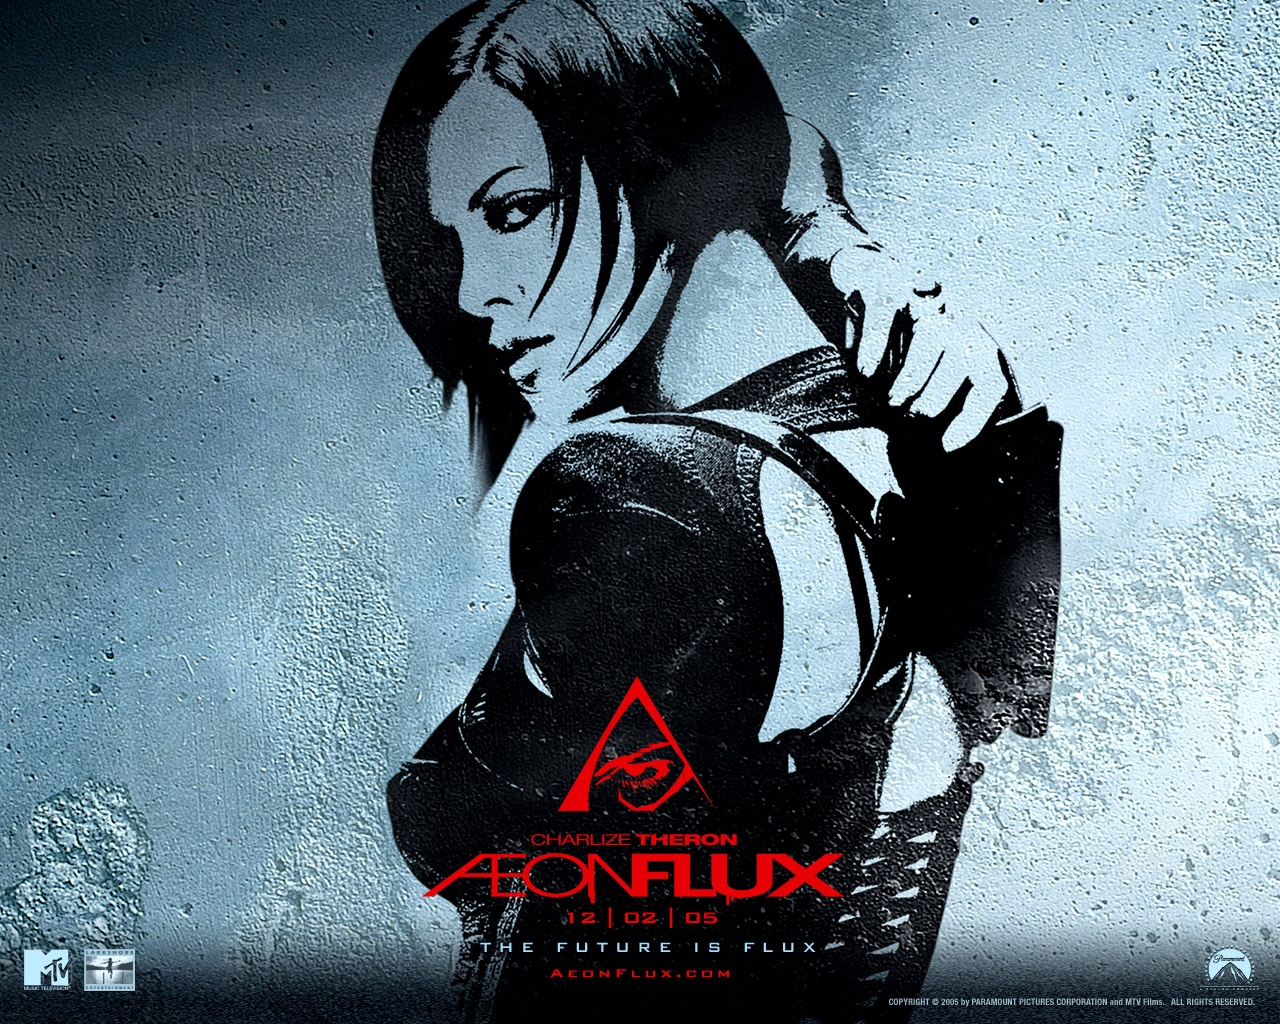 Aeon Flux wallpapers | Aeon Flux stock photos